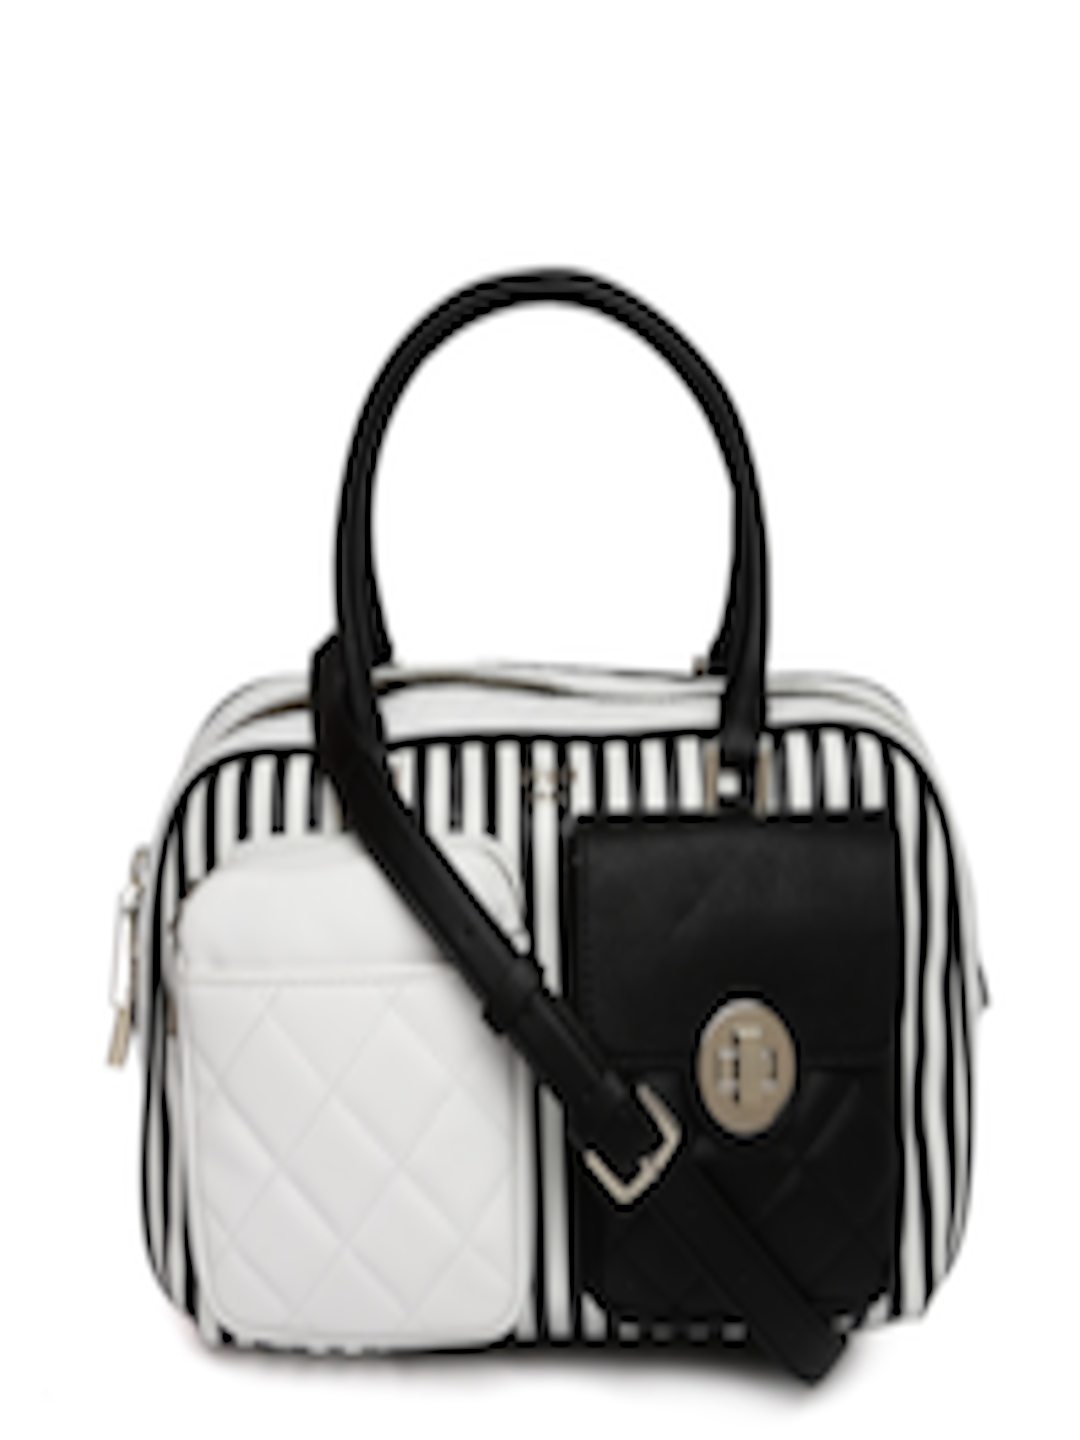 5a3b7413db Guess Black White Striped Handheld Bag With Detachable Sling